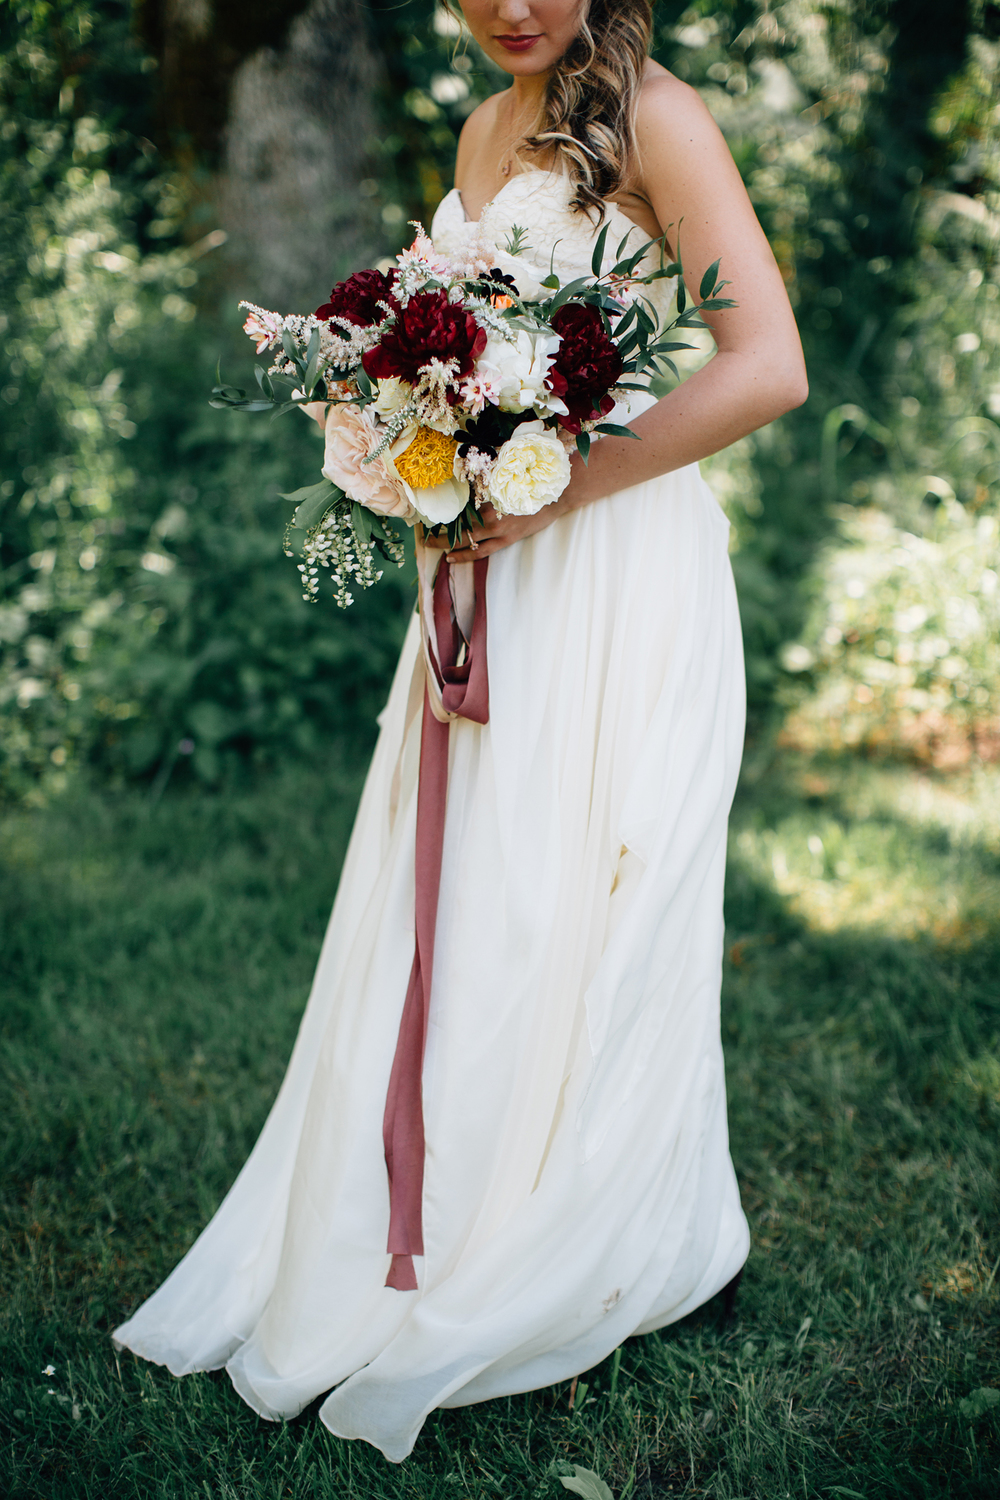 Seriously- can you believe this bouquet Taylor made?!?!